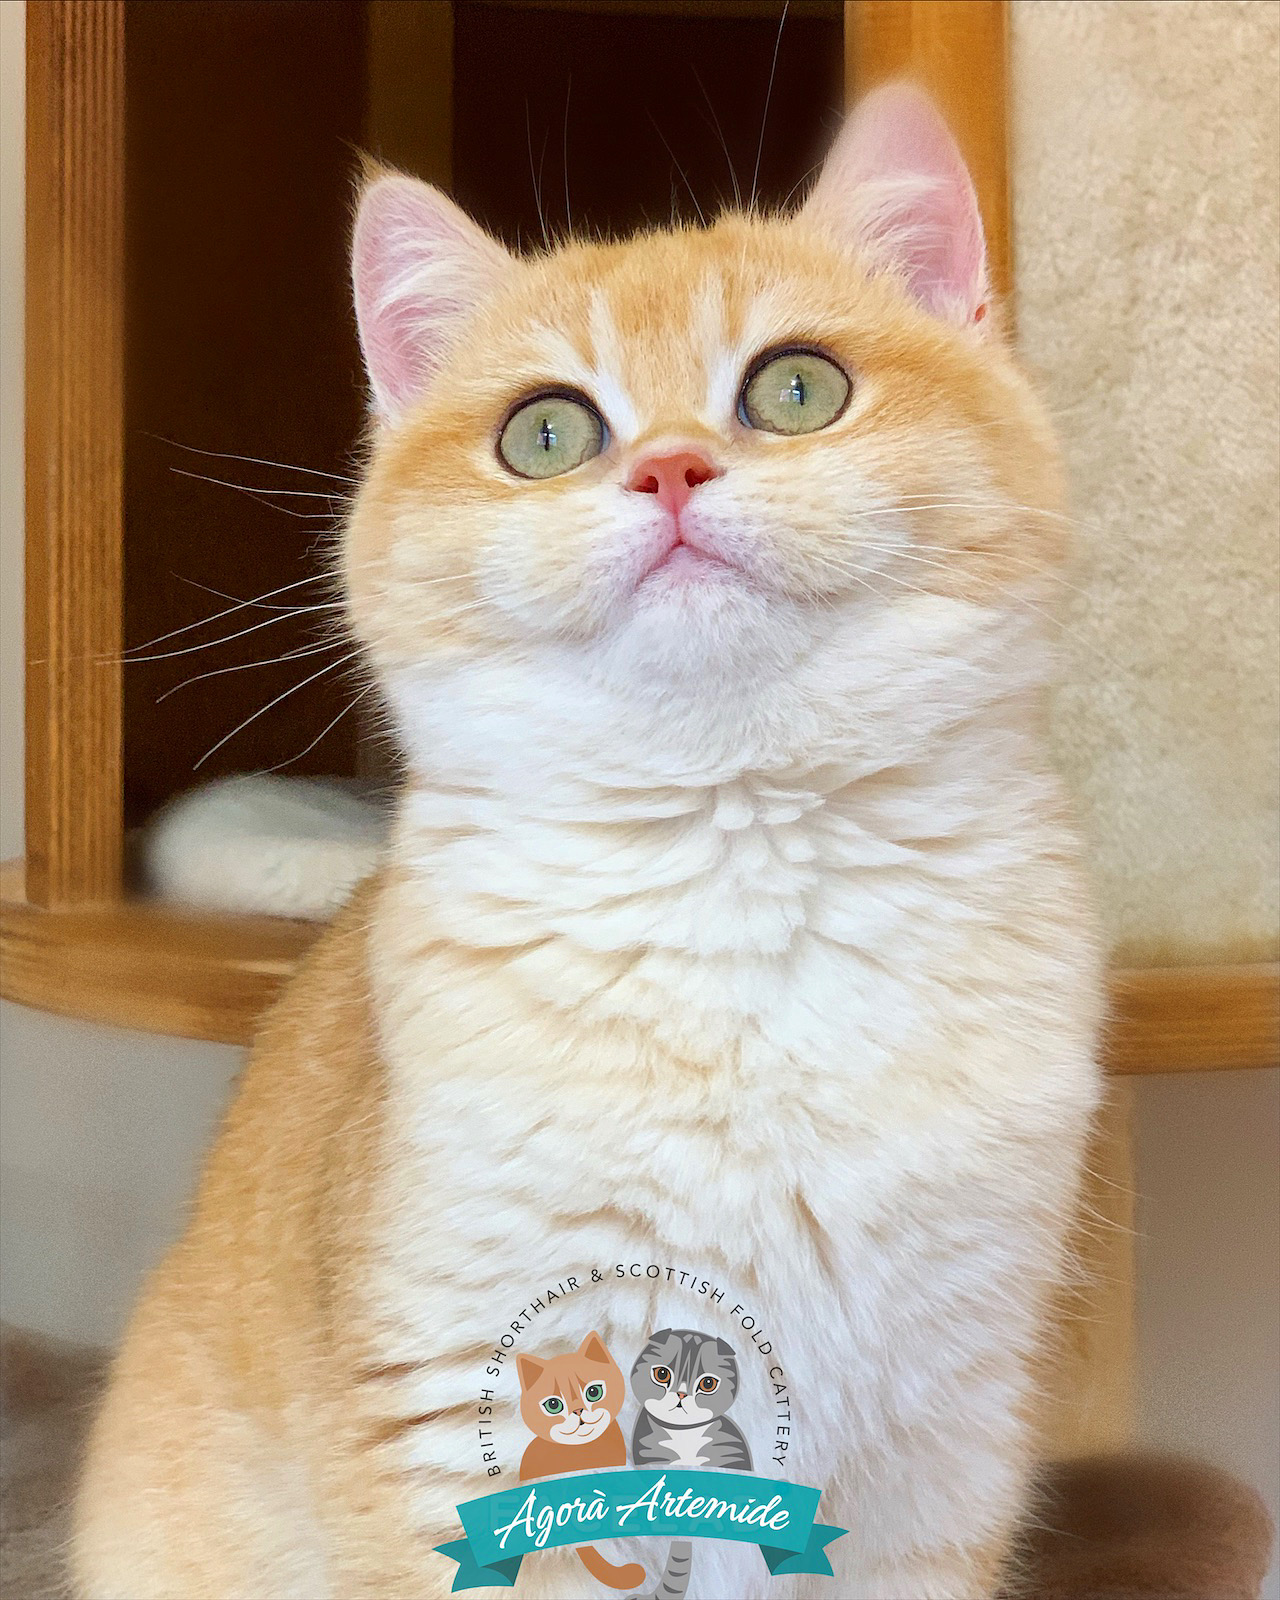 Allevamento Scottish Fold e British Shorthair